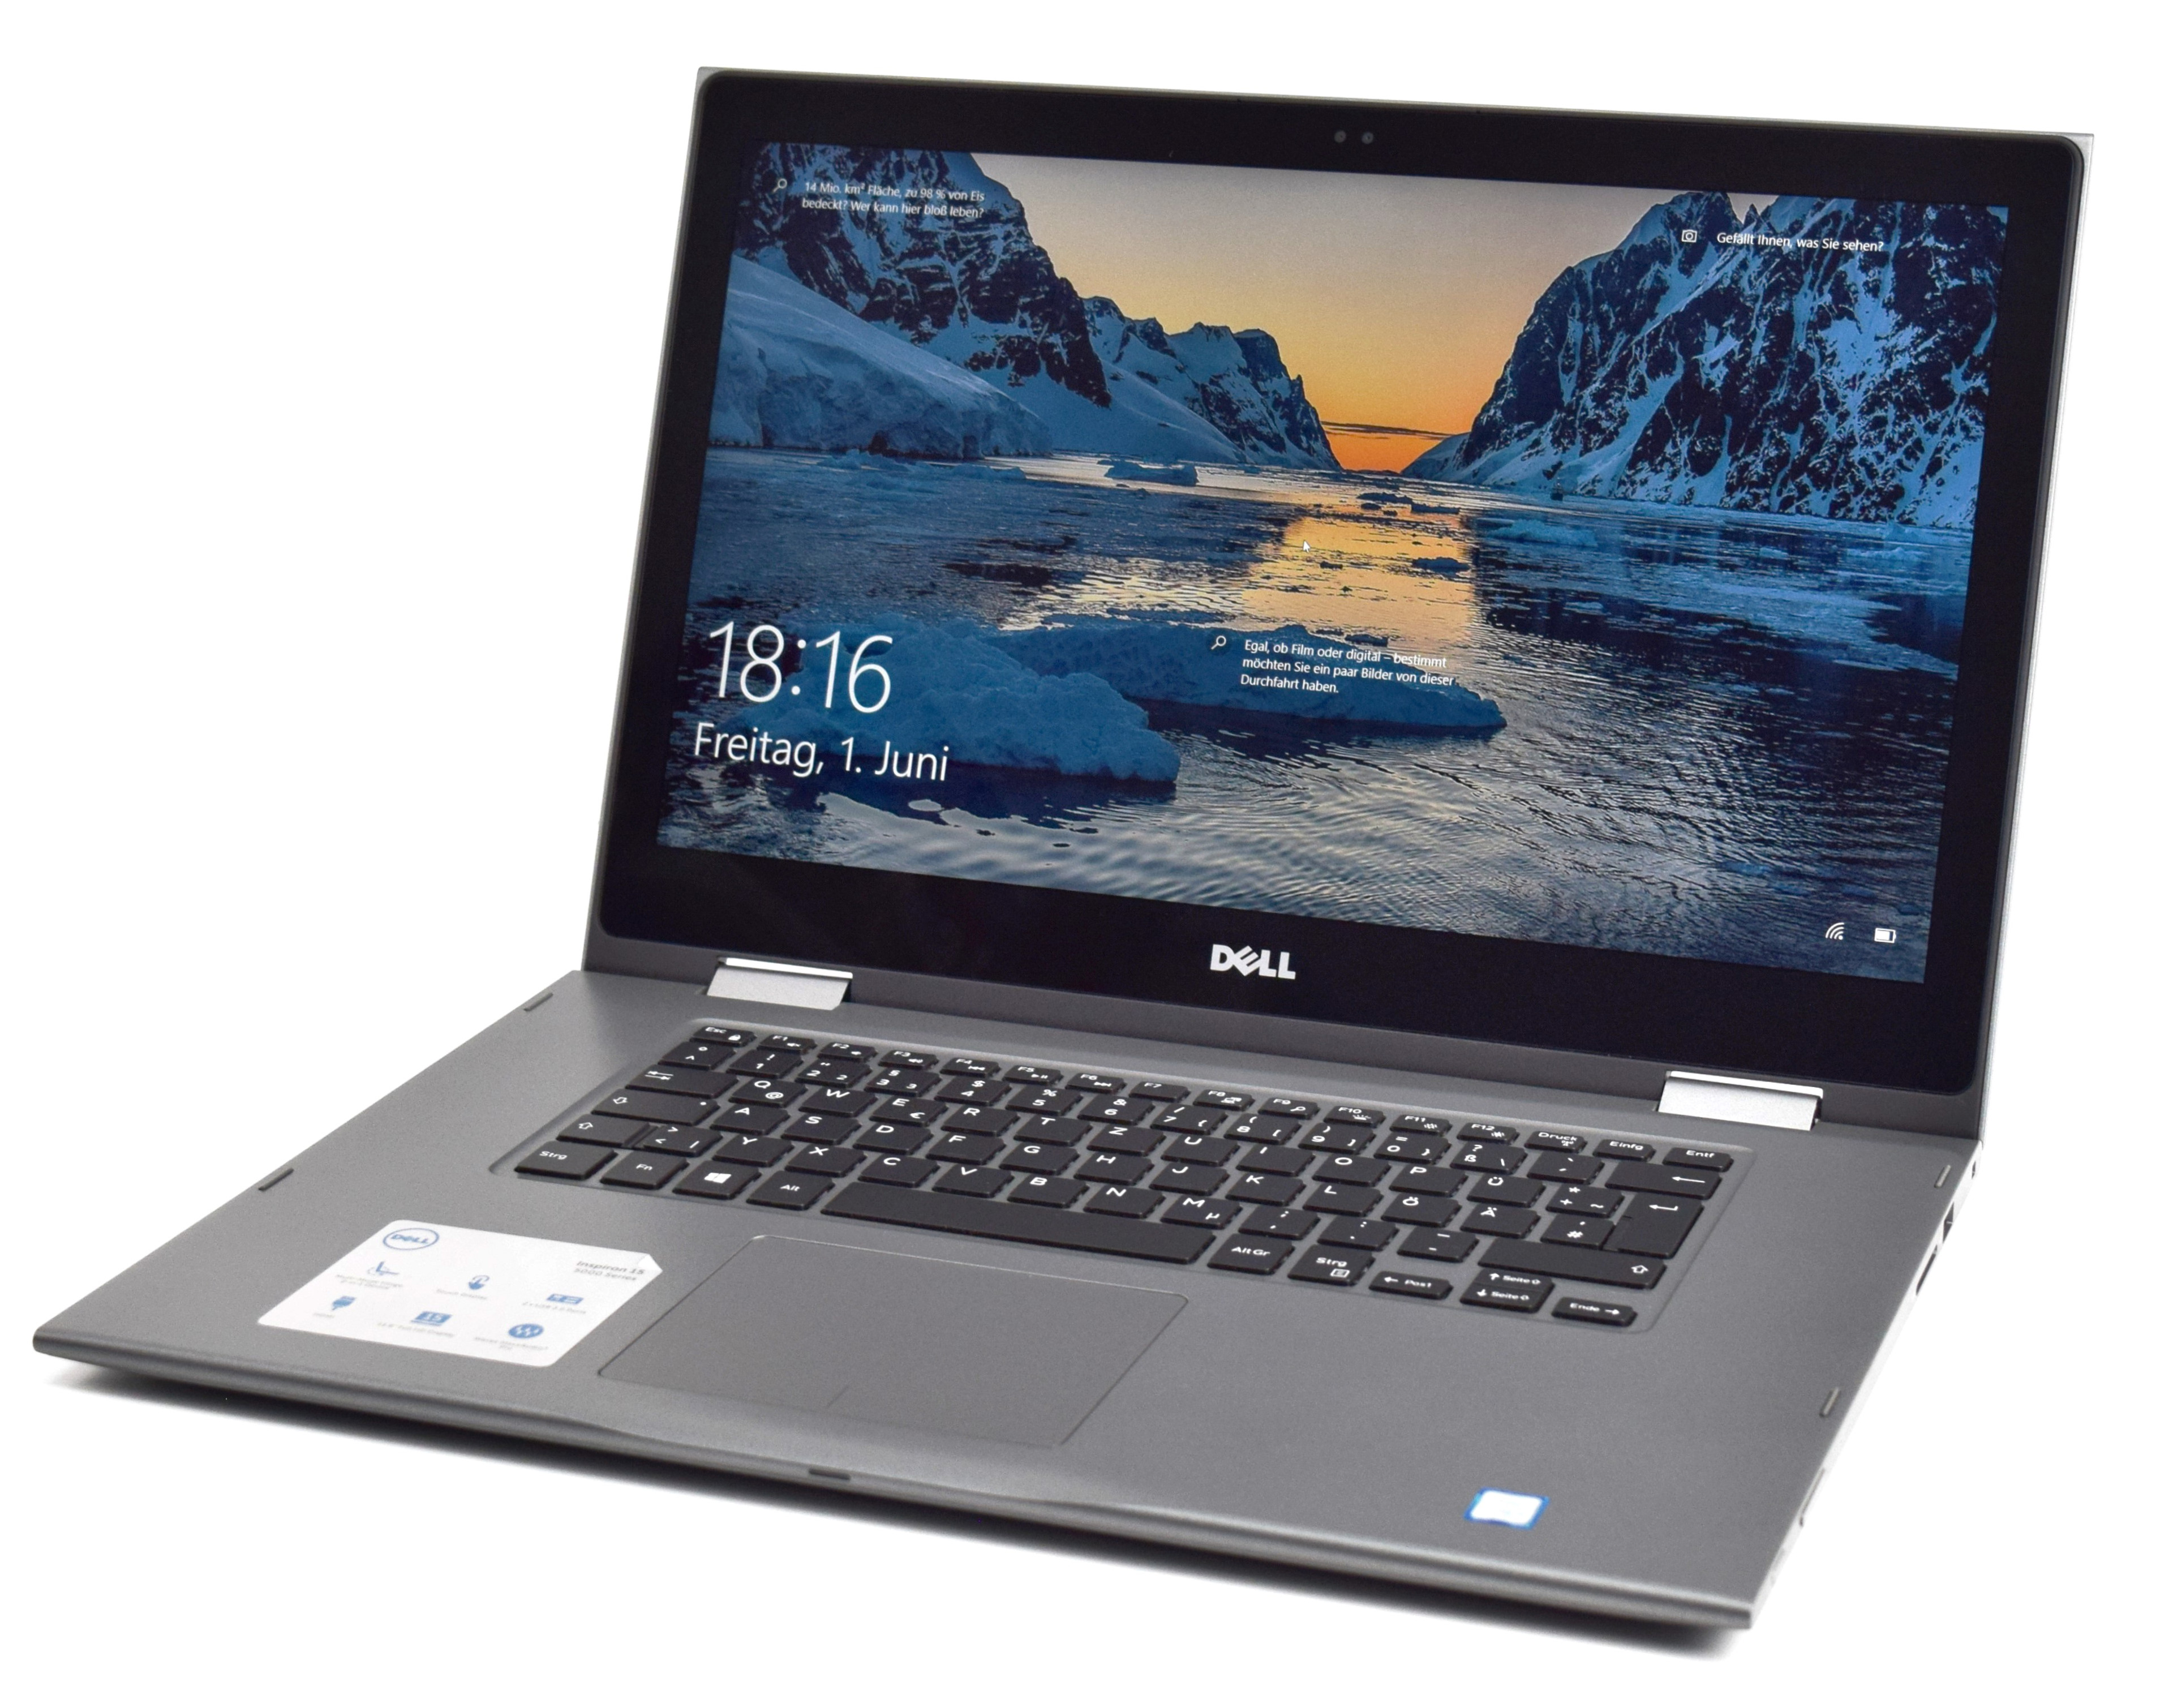 Dell inspiron 530 drivers windows 8 1 | Dell Inspiron 15